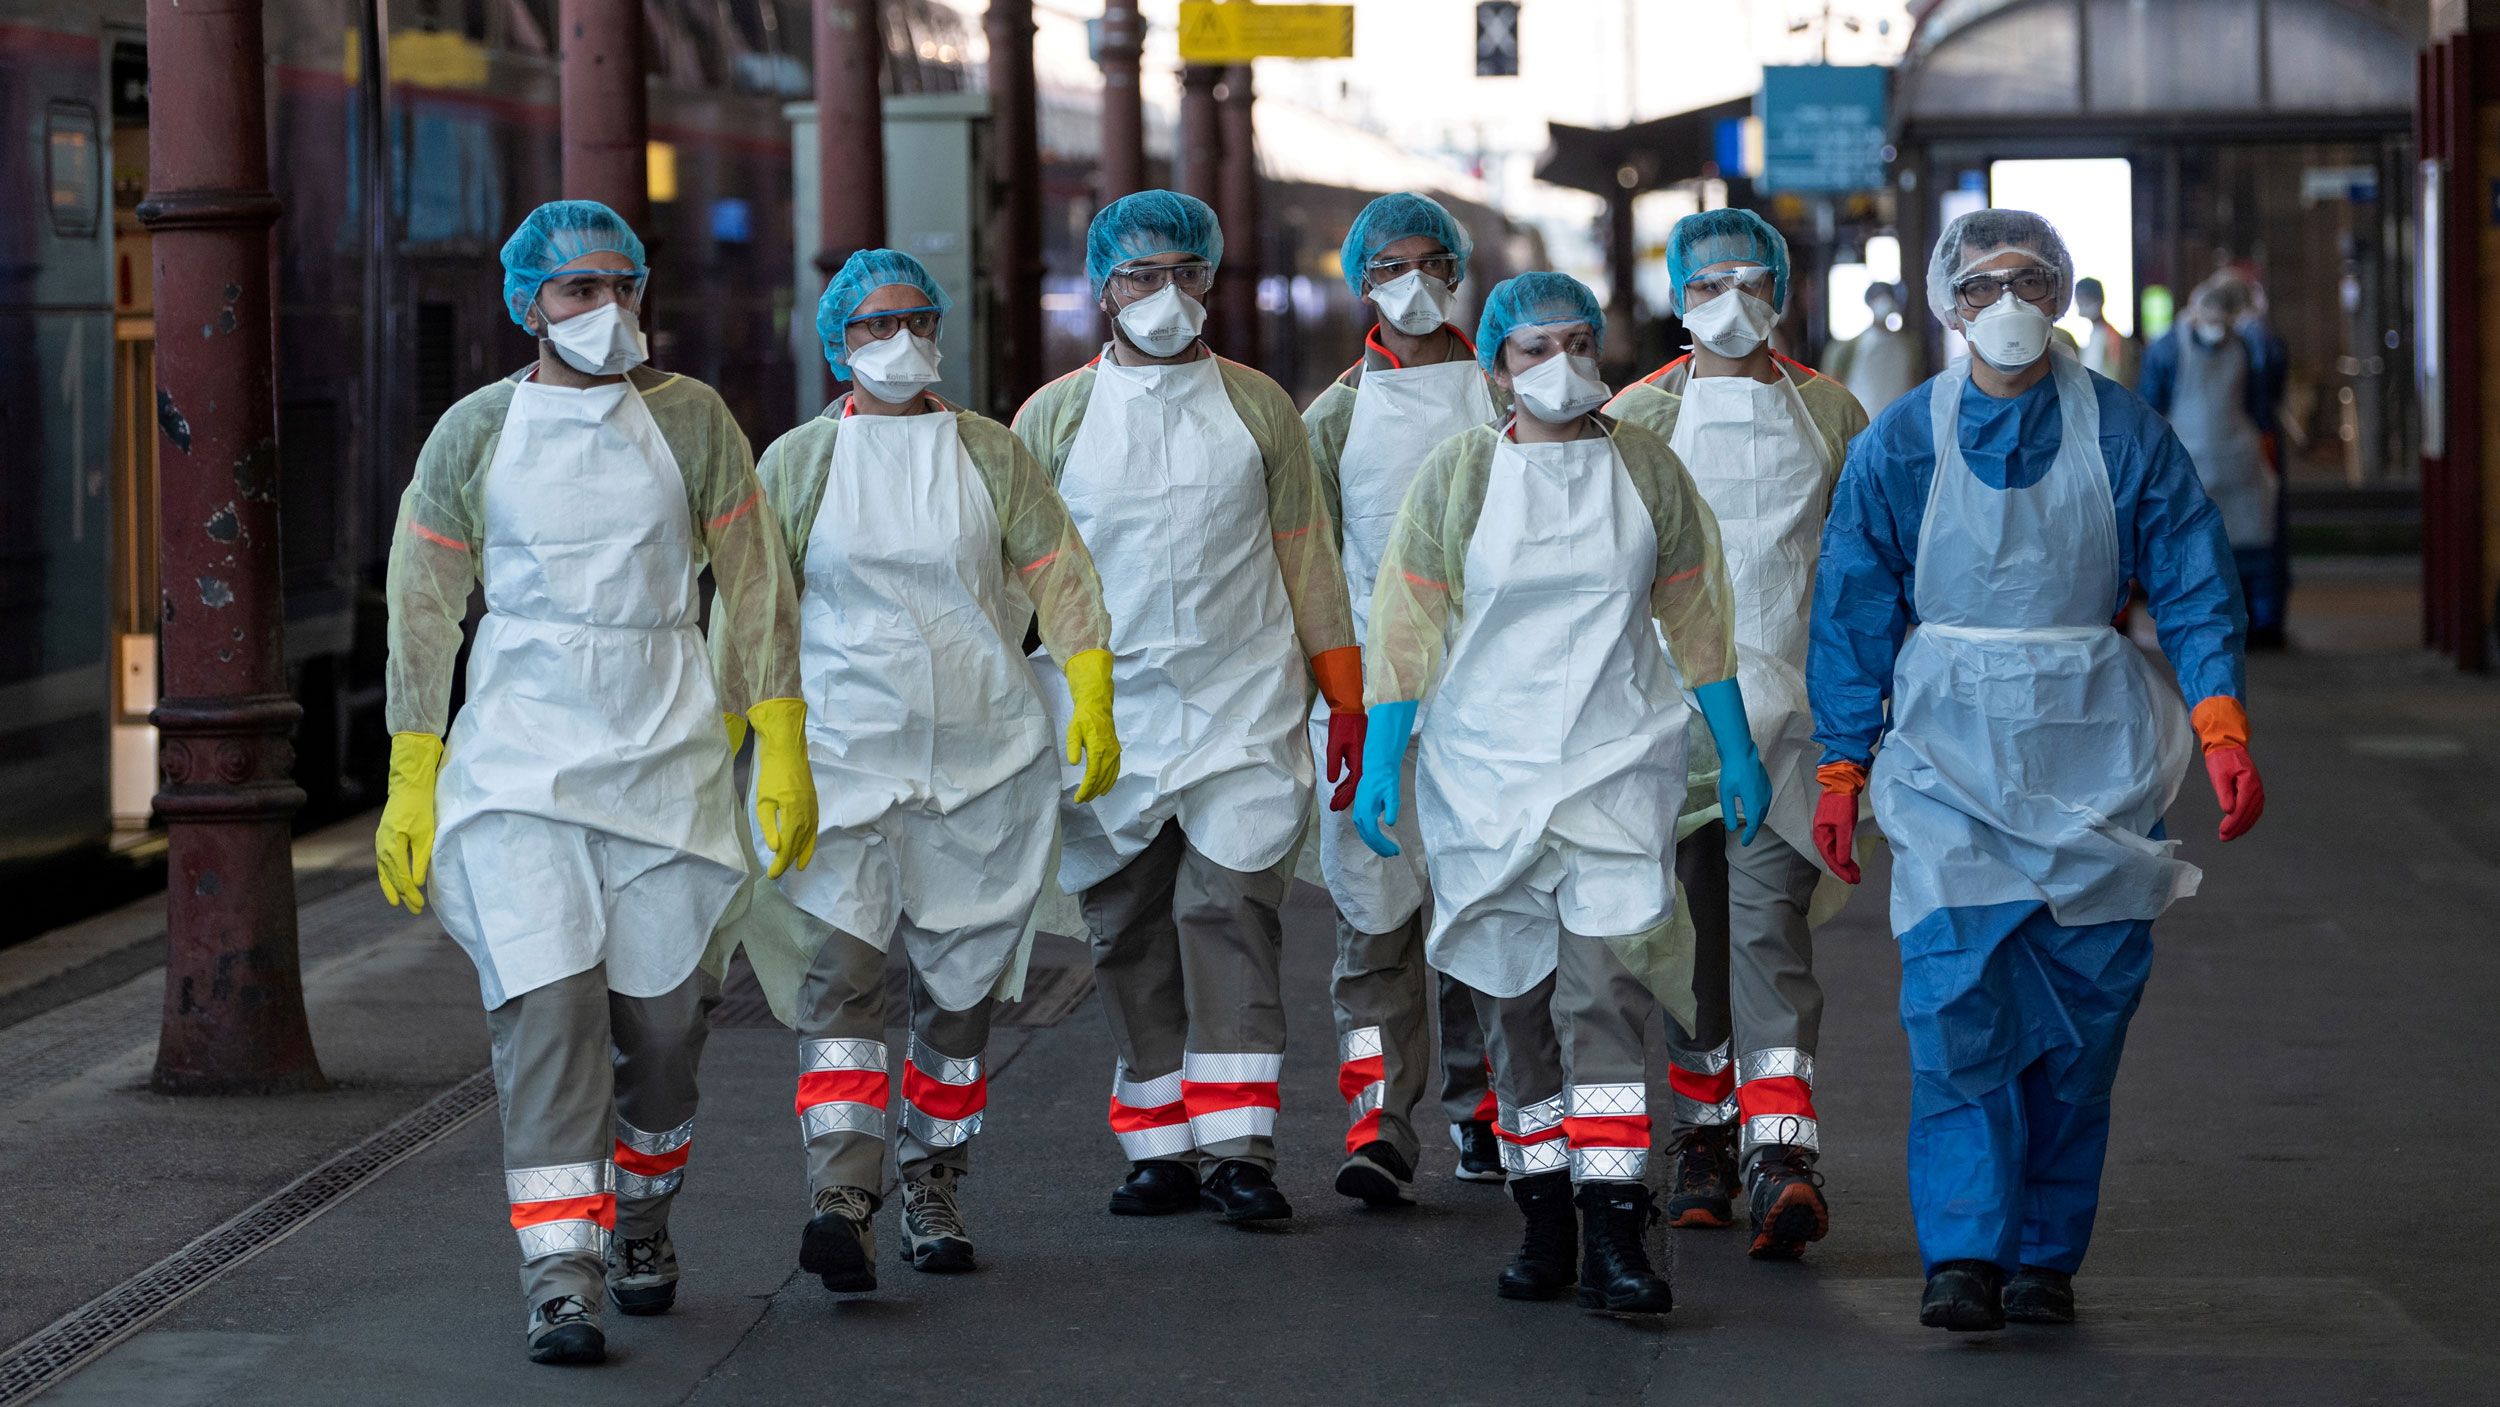 A group of people in PPE